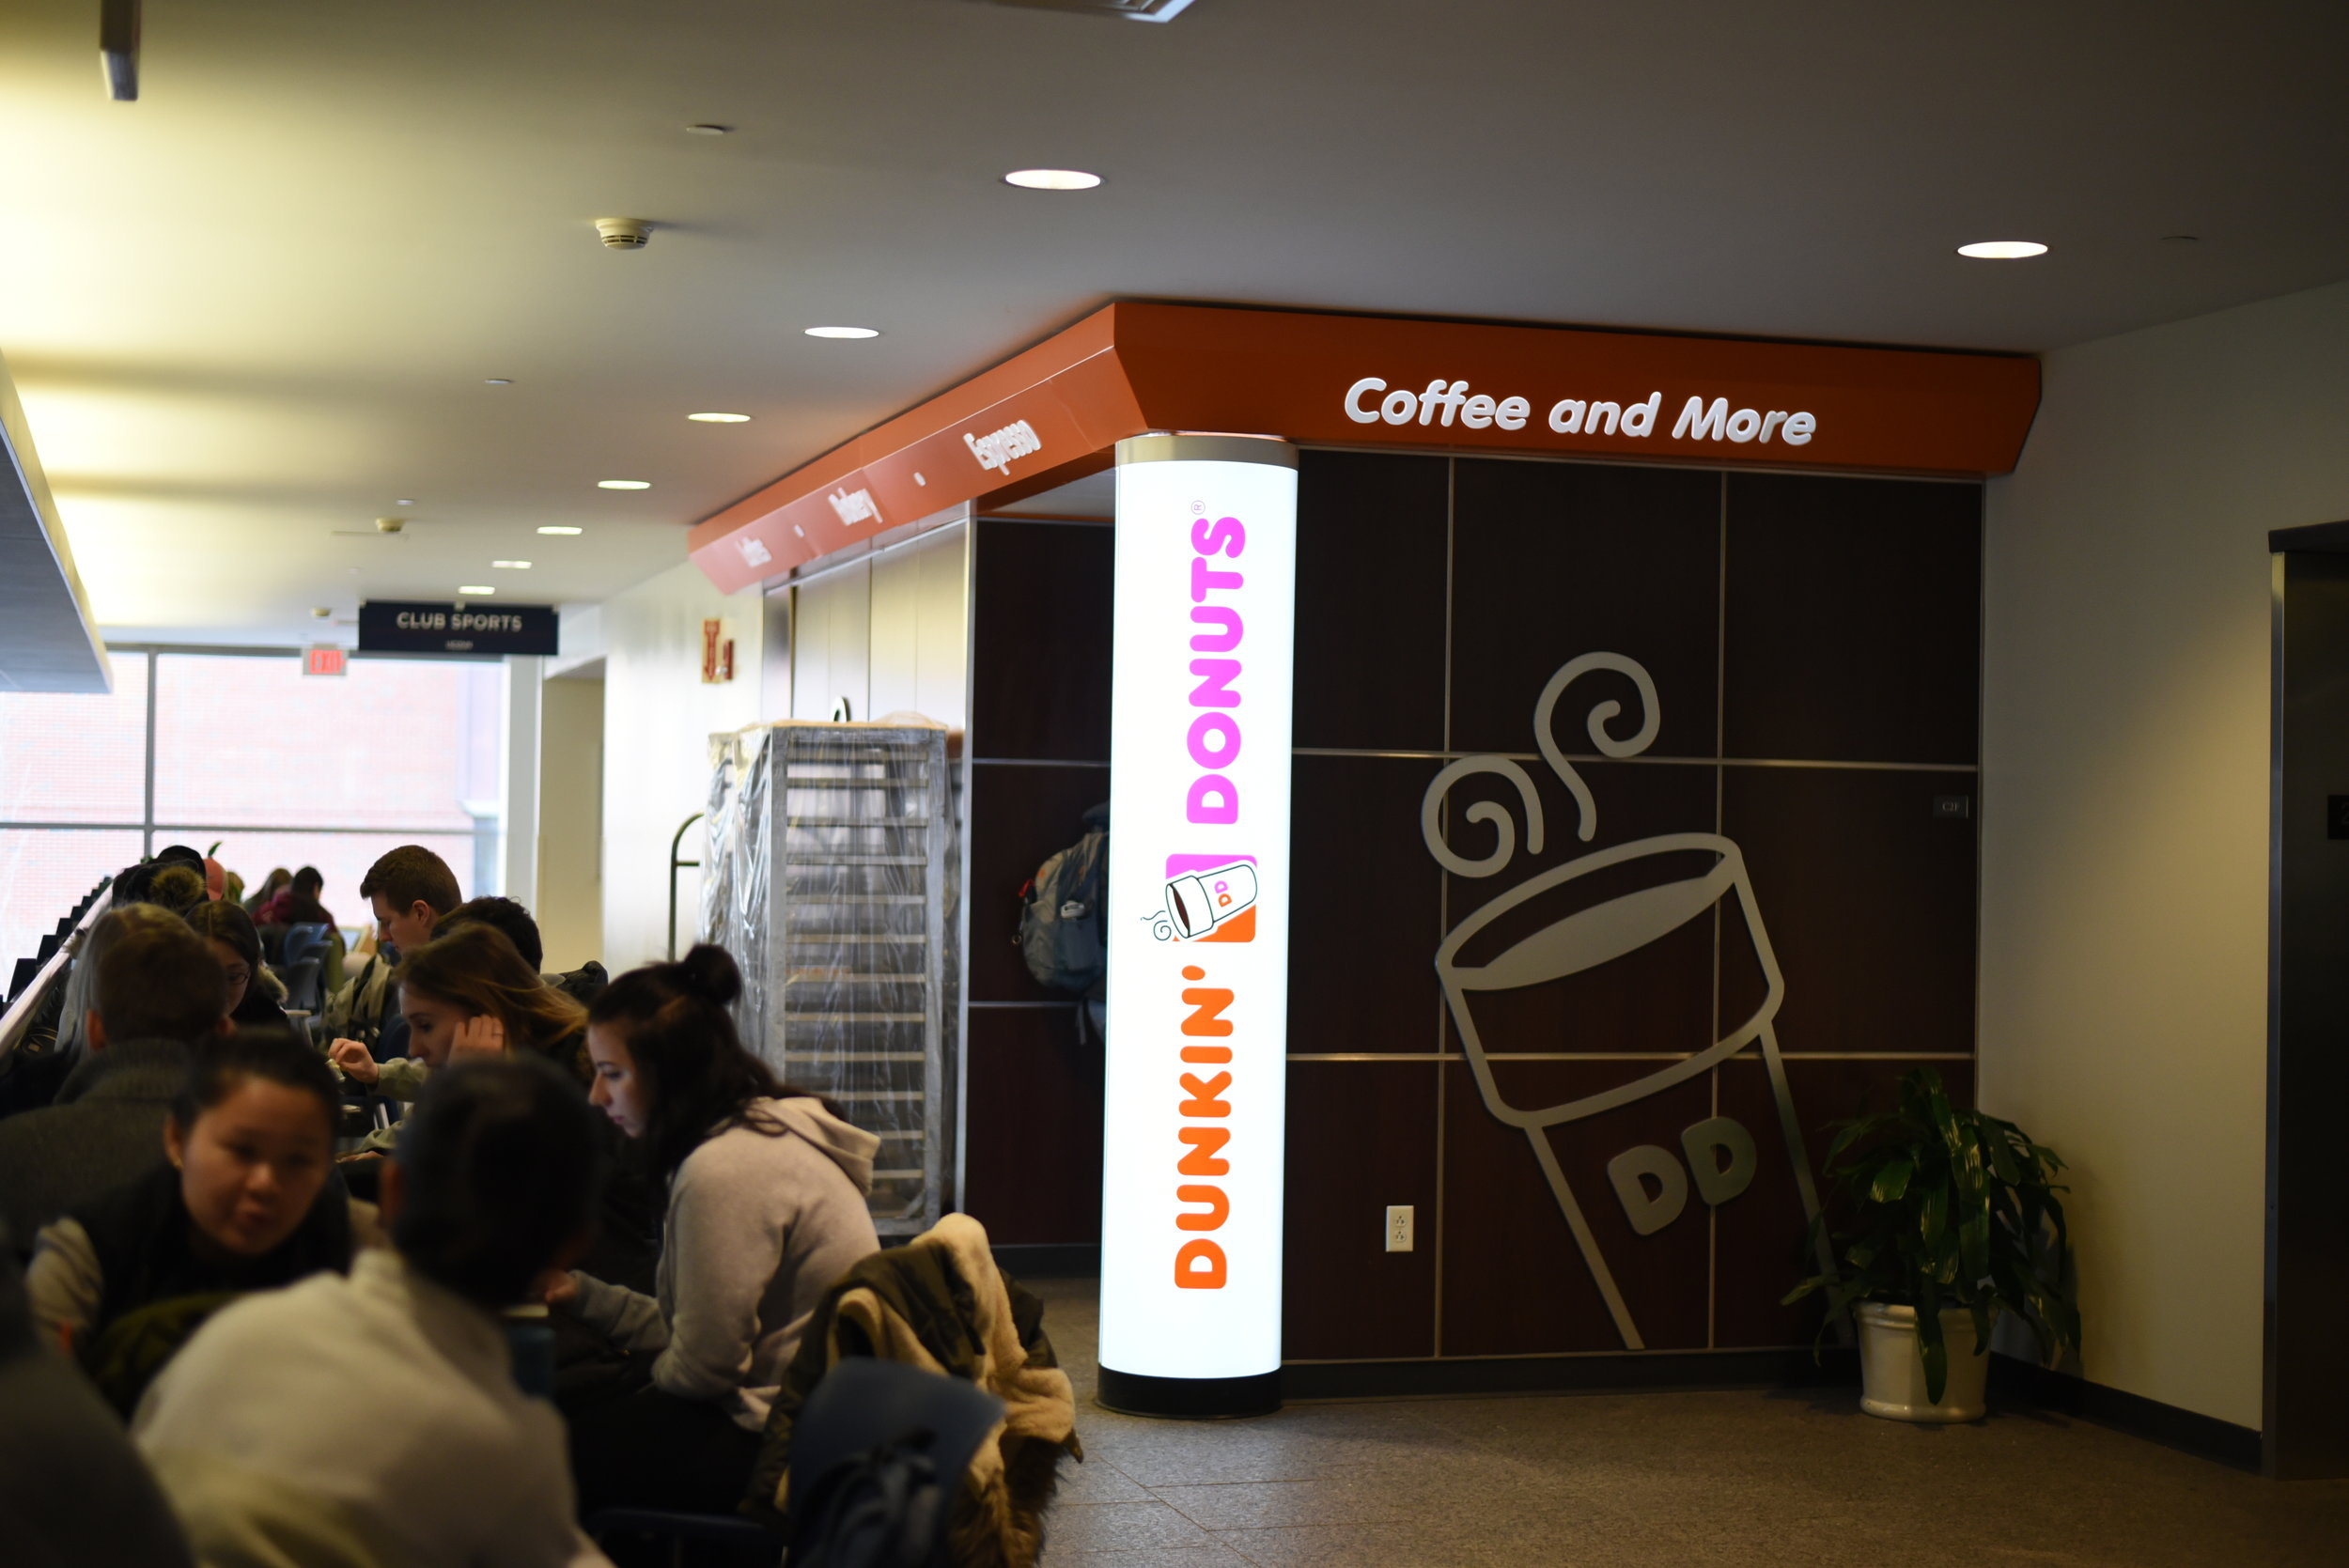 This change will keep nearly one billion Styrofoam cups out of the global waste stream annually, according to the press release. (Charlotte Lao/The Daily Campus)